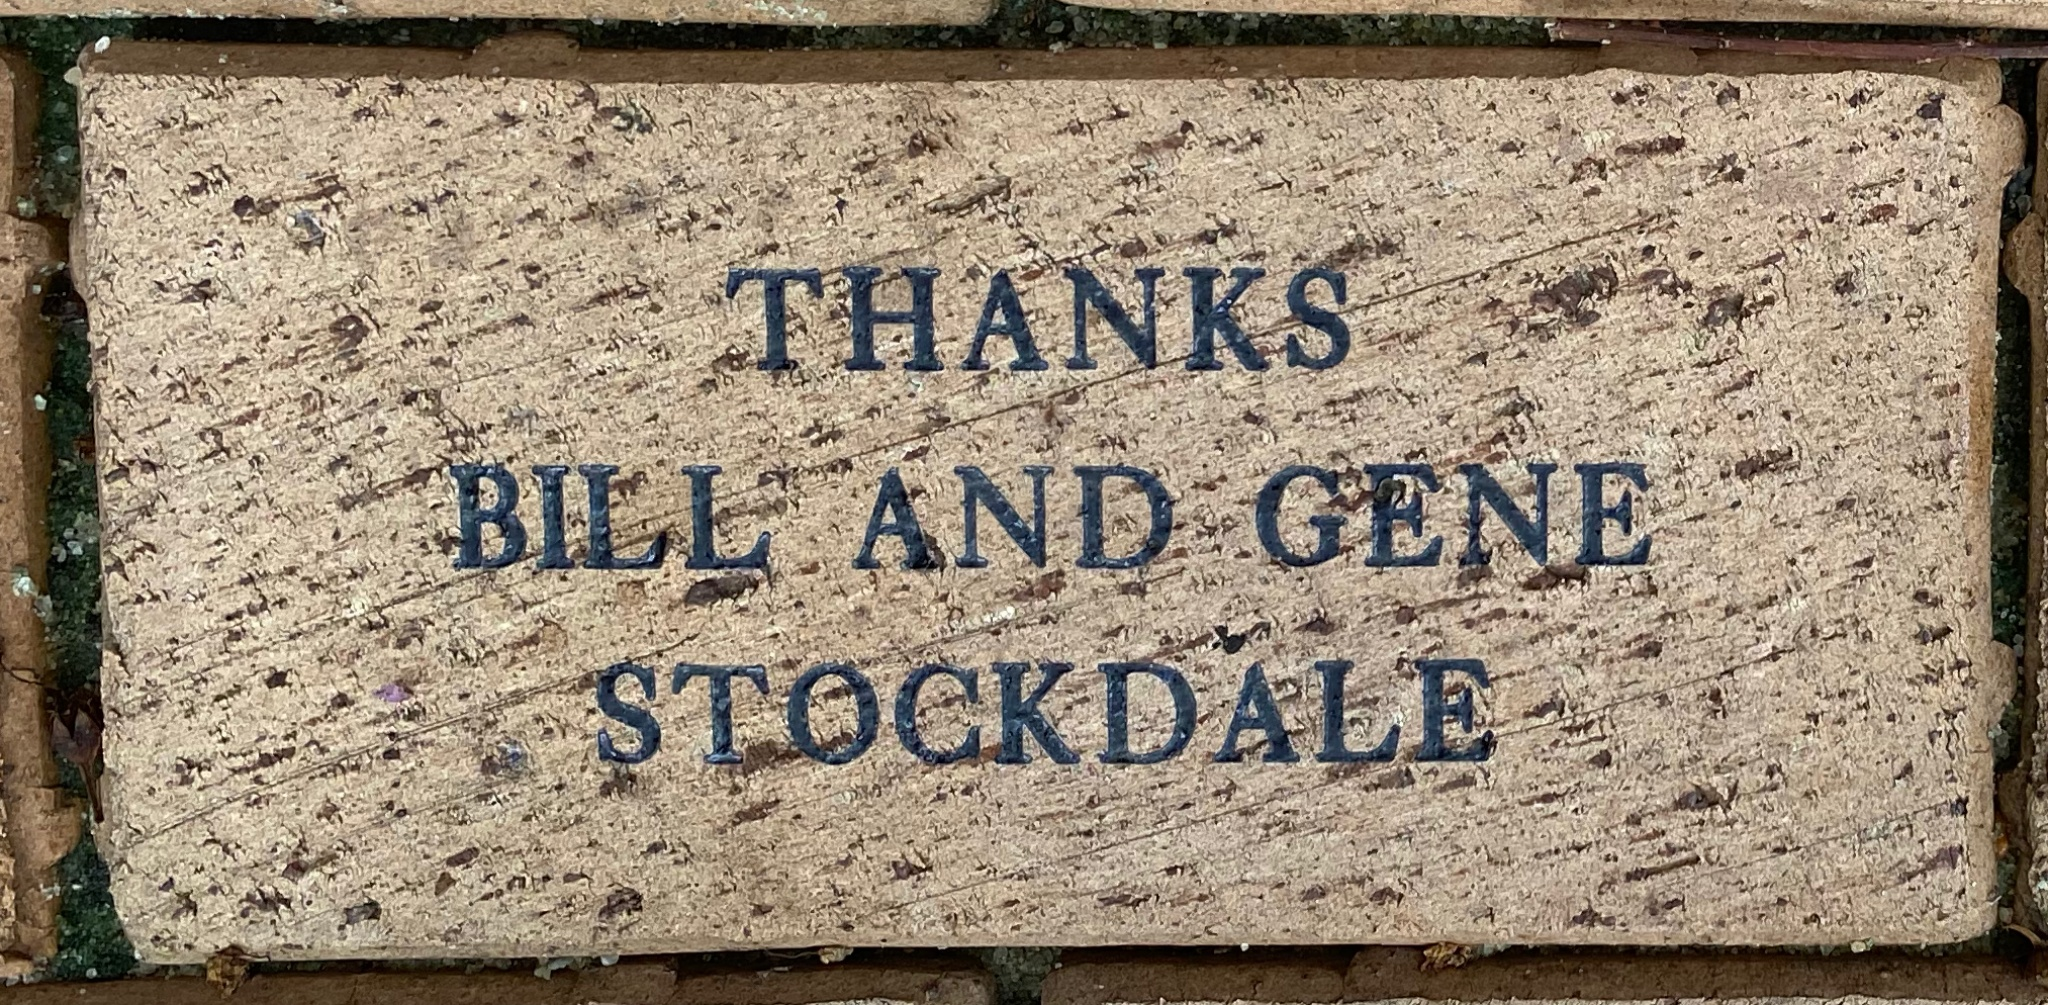 THANKS BILL AND GENE  STOCKDALE